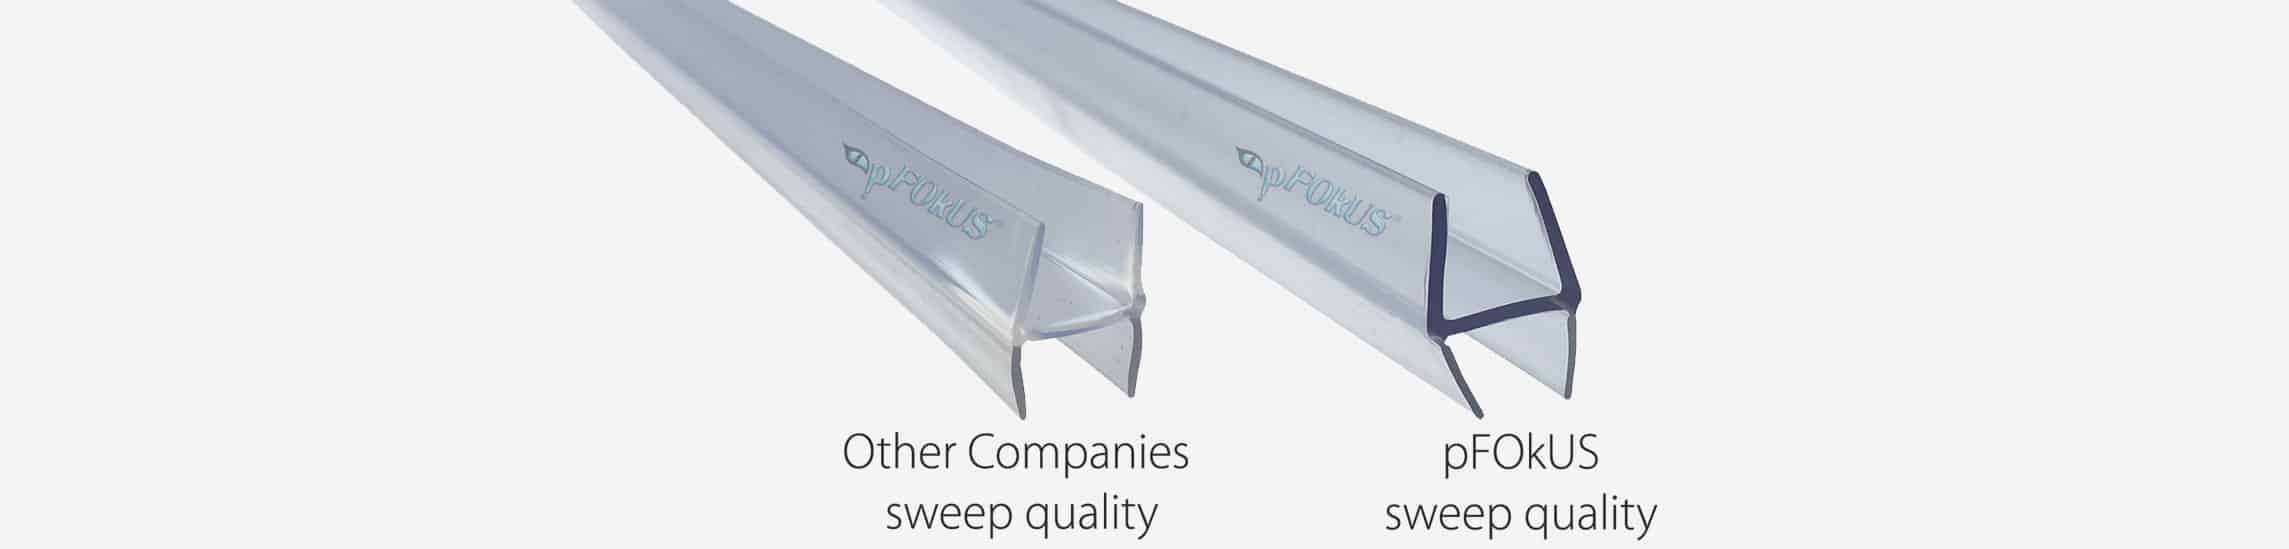 pFOkUS-shower-door-sweeps-quality